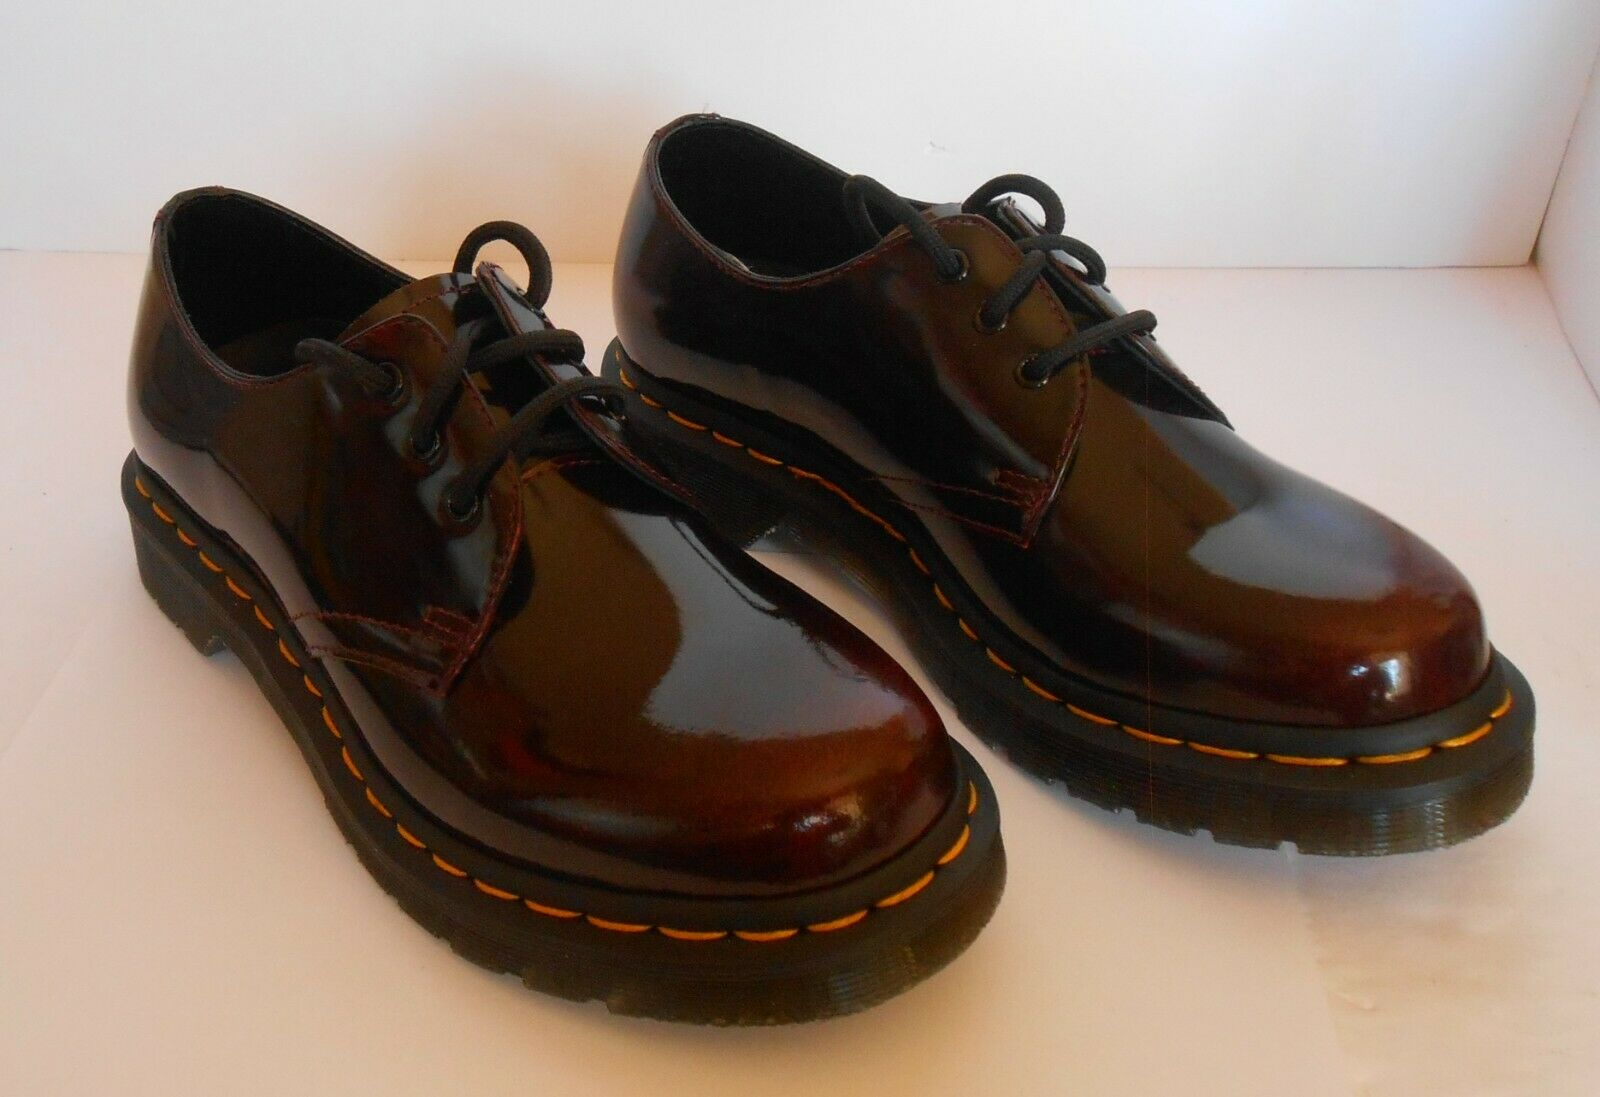 Dr. Martens Vegan 1461 Unisex 3 Eye Shoes . Cherry Red Oxford Rub Off . Size 5